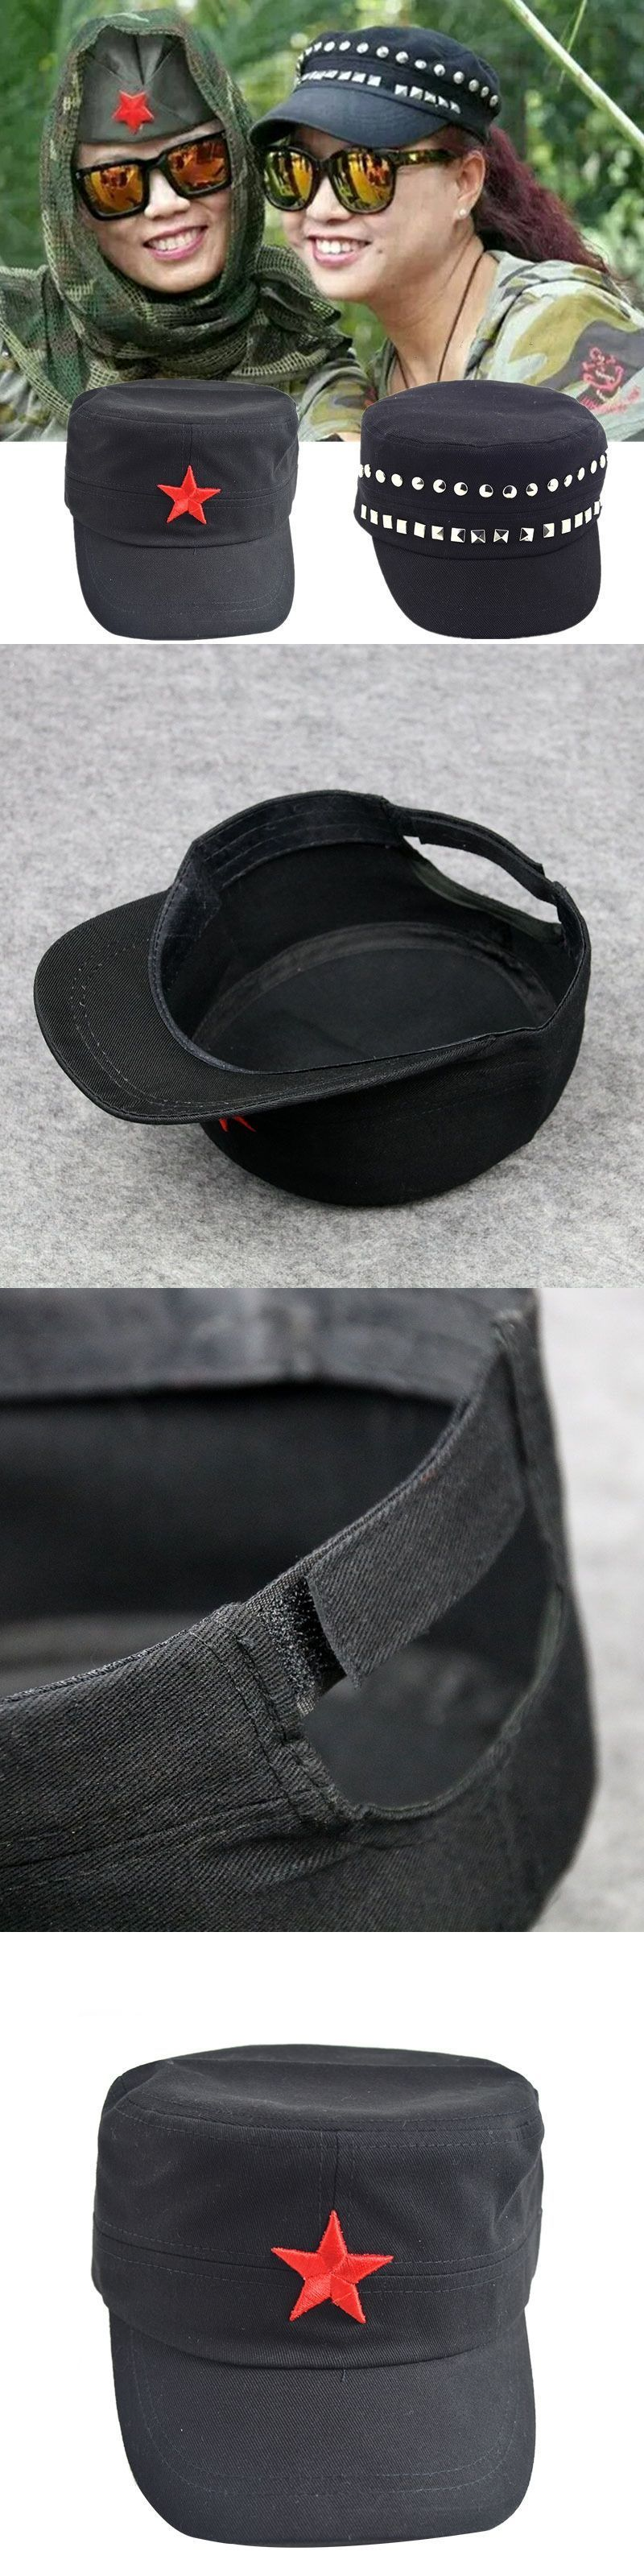 6e8c82138fb 3D Red Star Embroidery Bone Military Cap Black Army Green Flat Top Hats for couple  Men